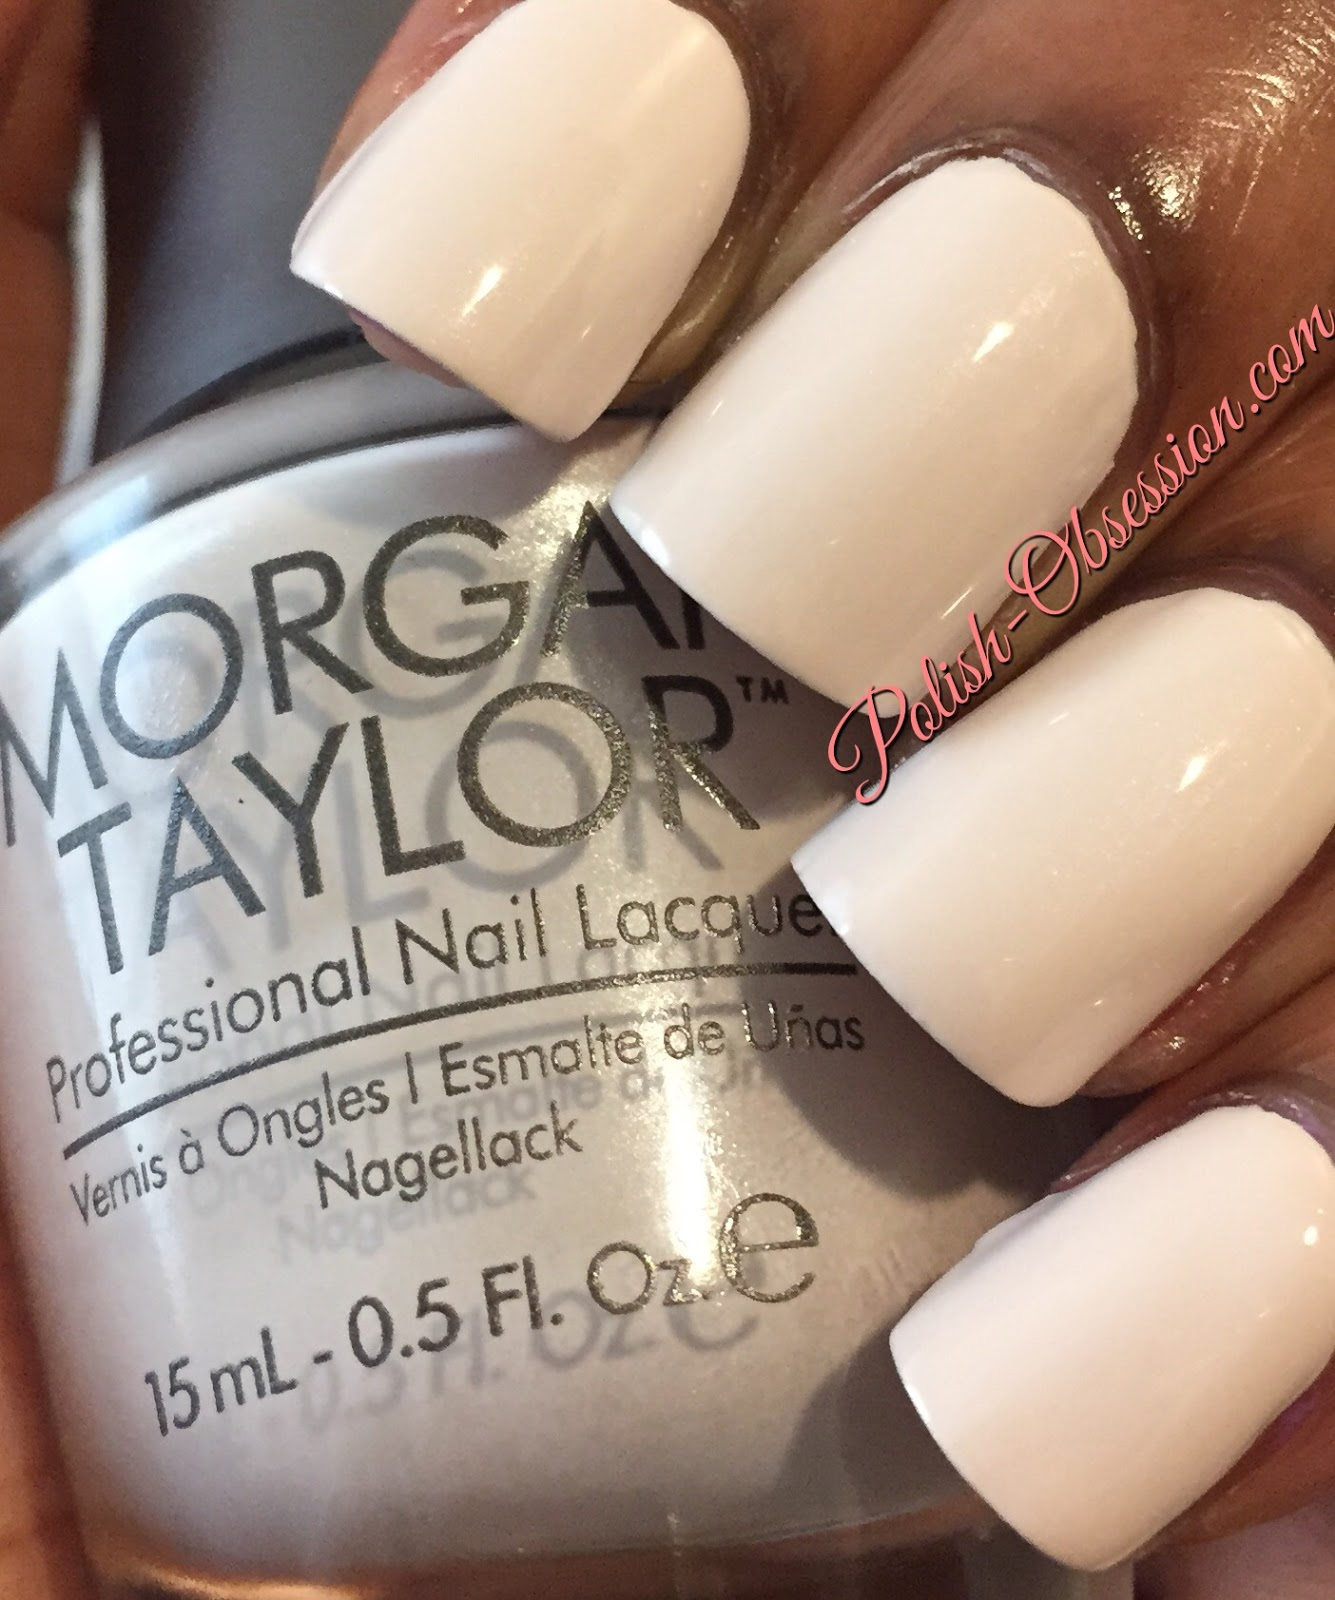 Morgan Taylor Urban Cowboy Collection | Polish Obsession